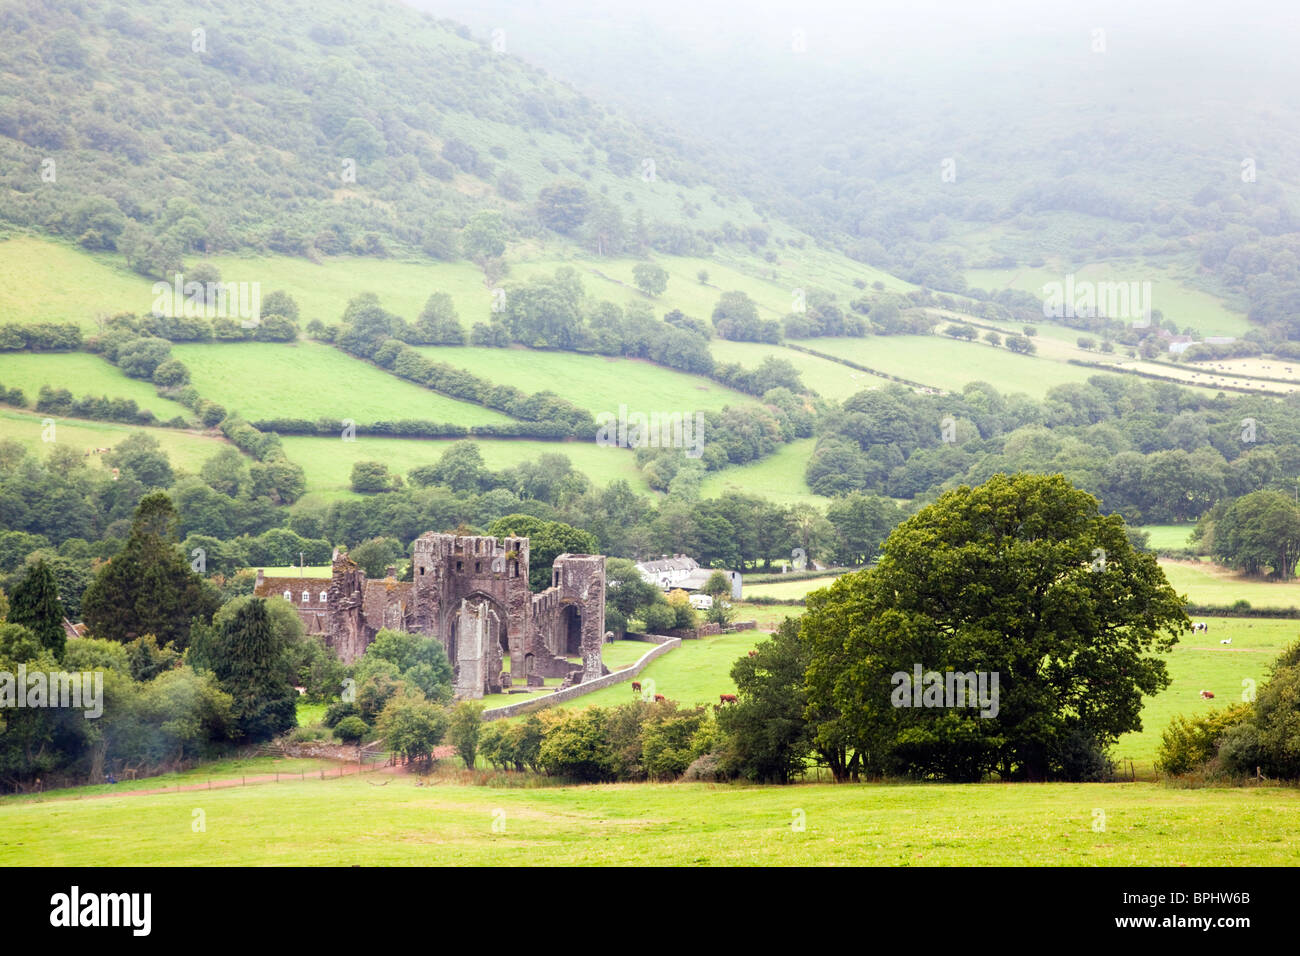 Llanthony Priory; Brecon Beacons; Wales - Stock Image